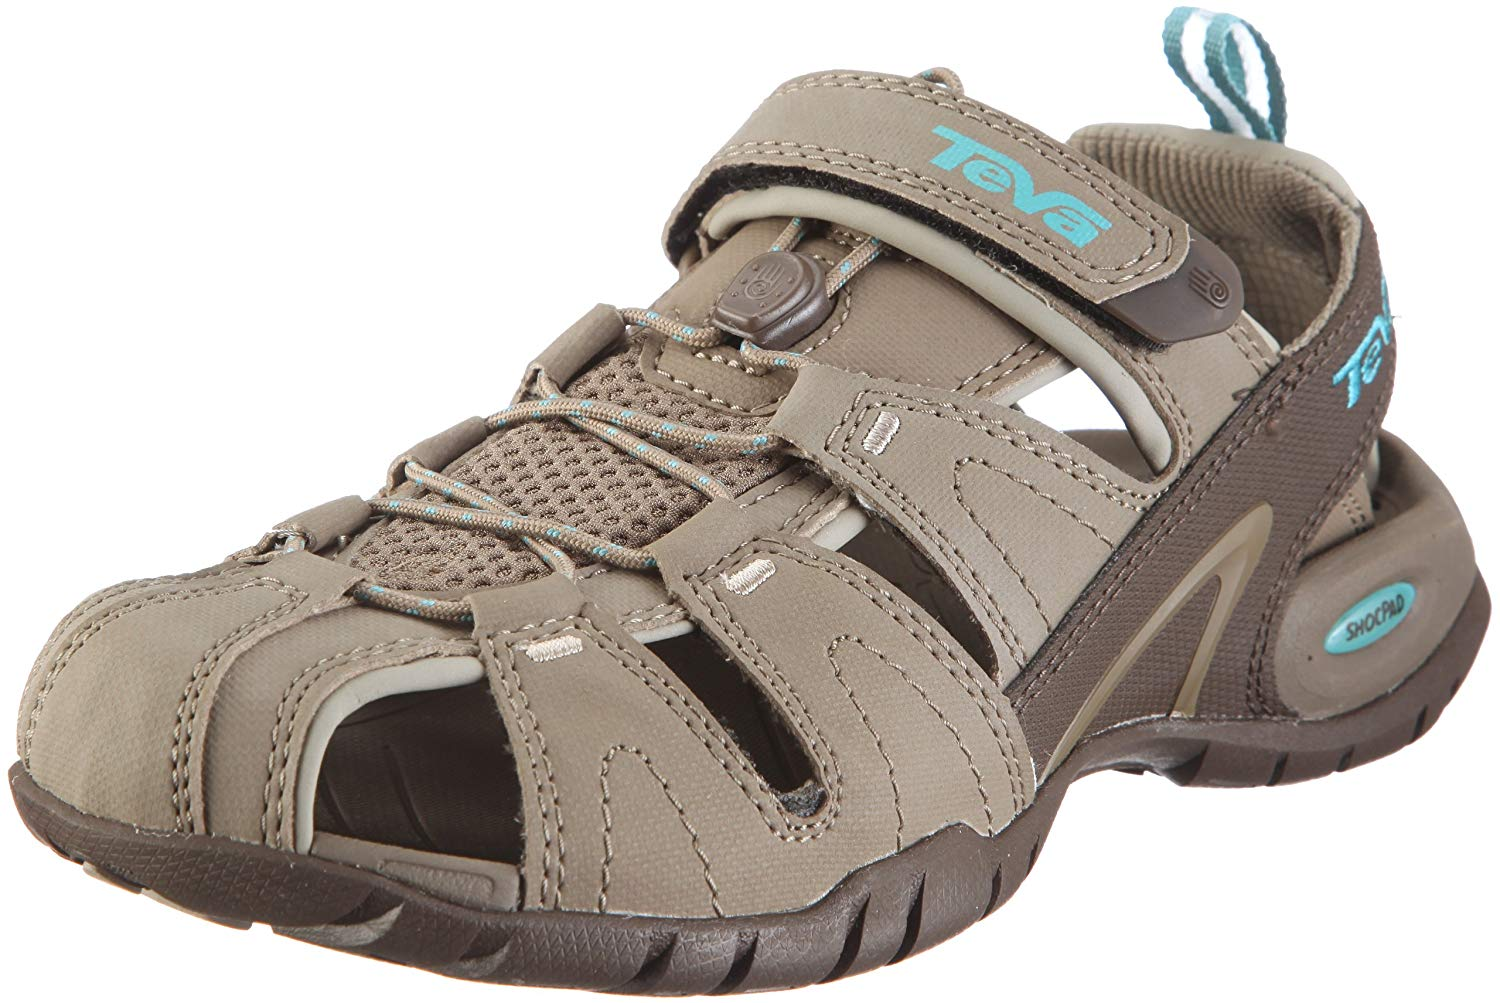 43777065bae05f Get Quotations · Teva Women s Dozer III Sandal